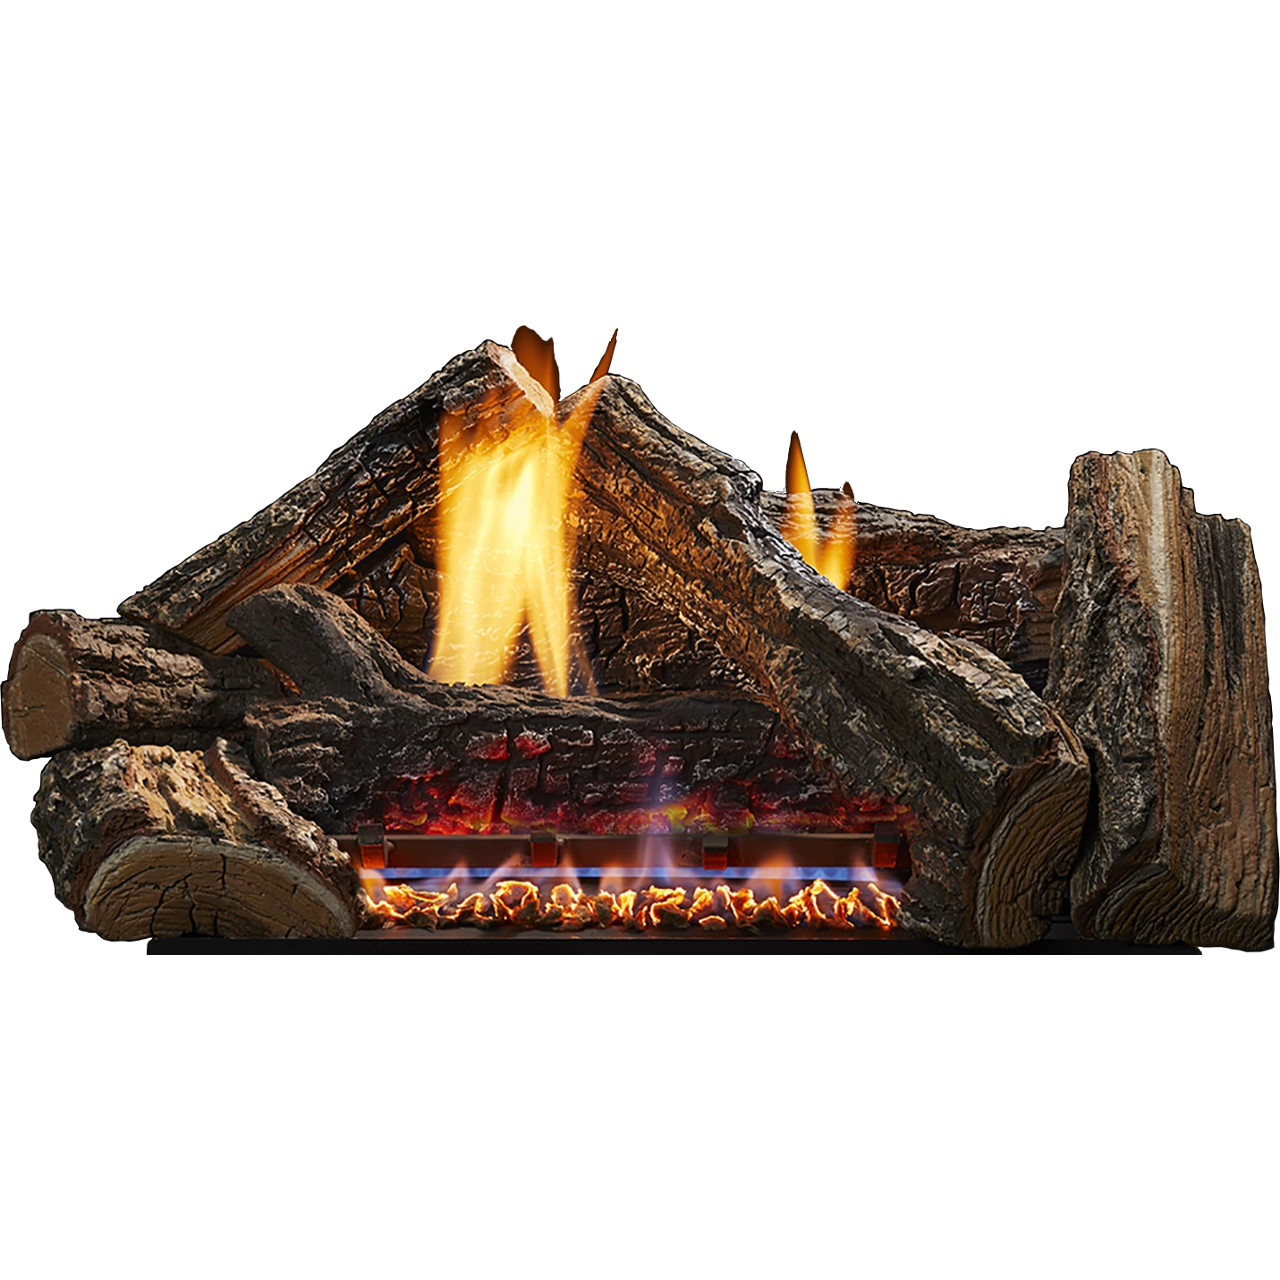 "24"" IntelliFire Plus Glow Getter Burner, Natural Gas with Remote Control, 29,000 BTU"